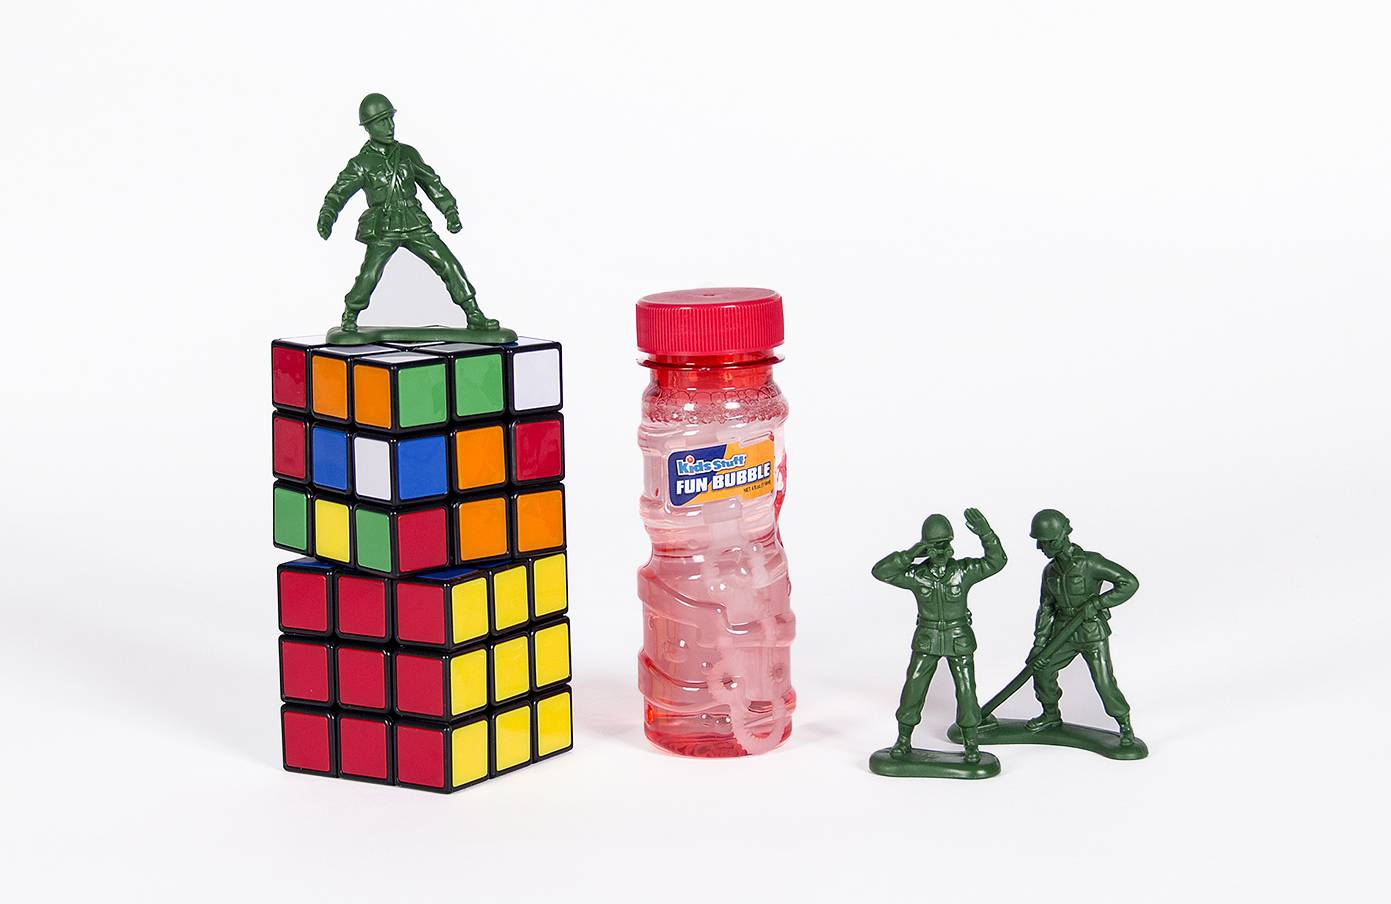 Bubbles, little green army men and the Rubik's Cube were inducted to the National Toy Hall of Fame this year. The toys enter the Rochester, N.Y., museum after being selected by a panel of expert judges from among a dozen finalists.